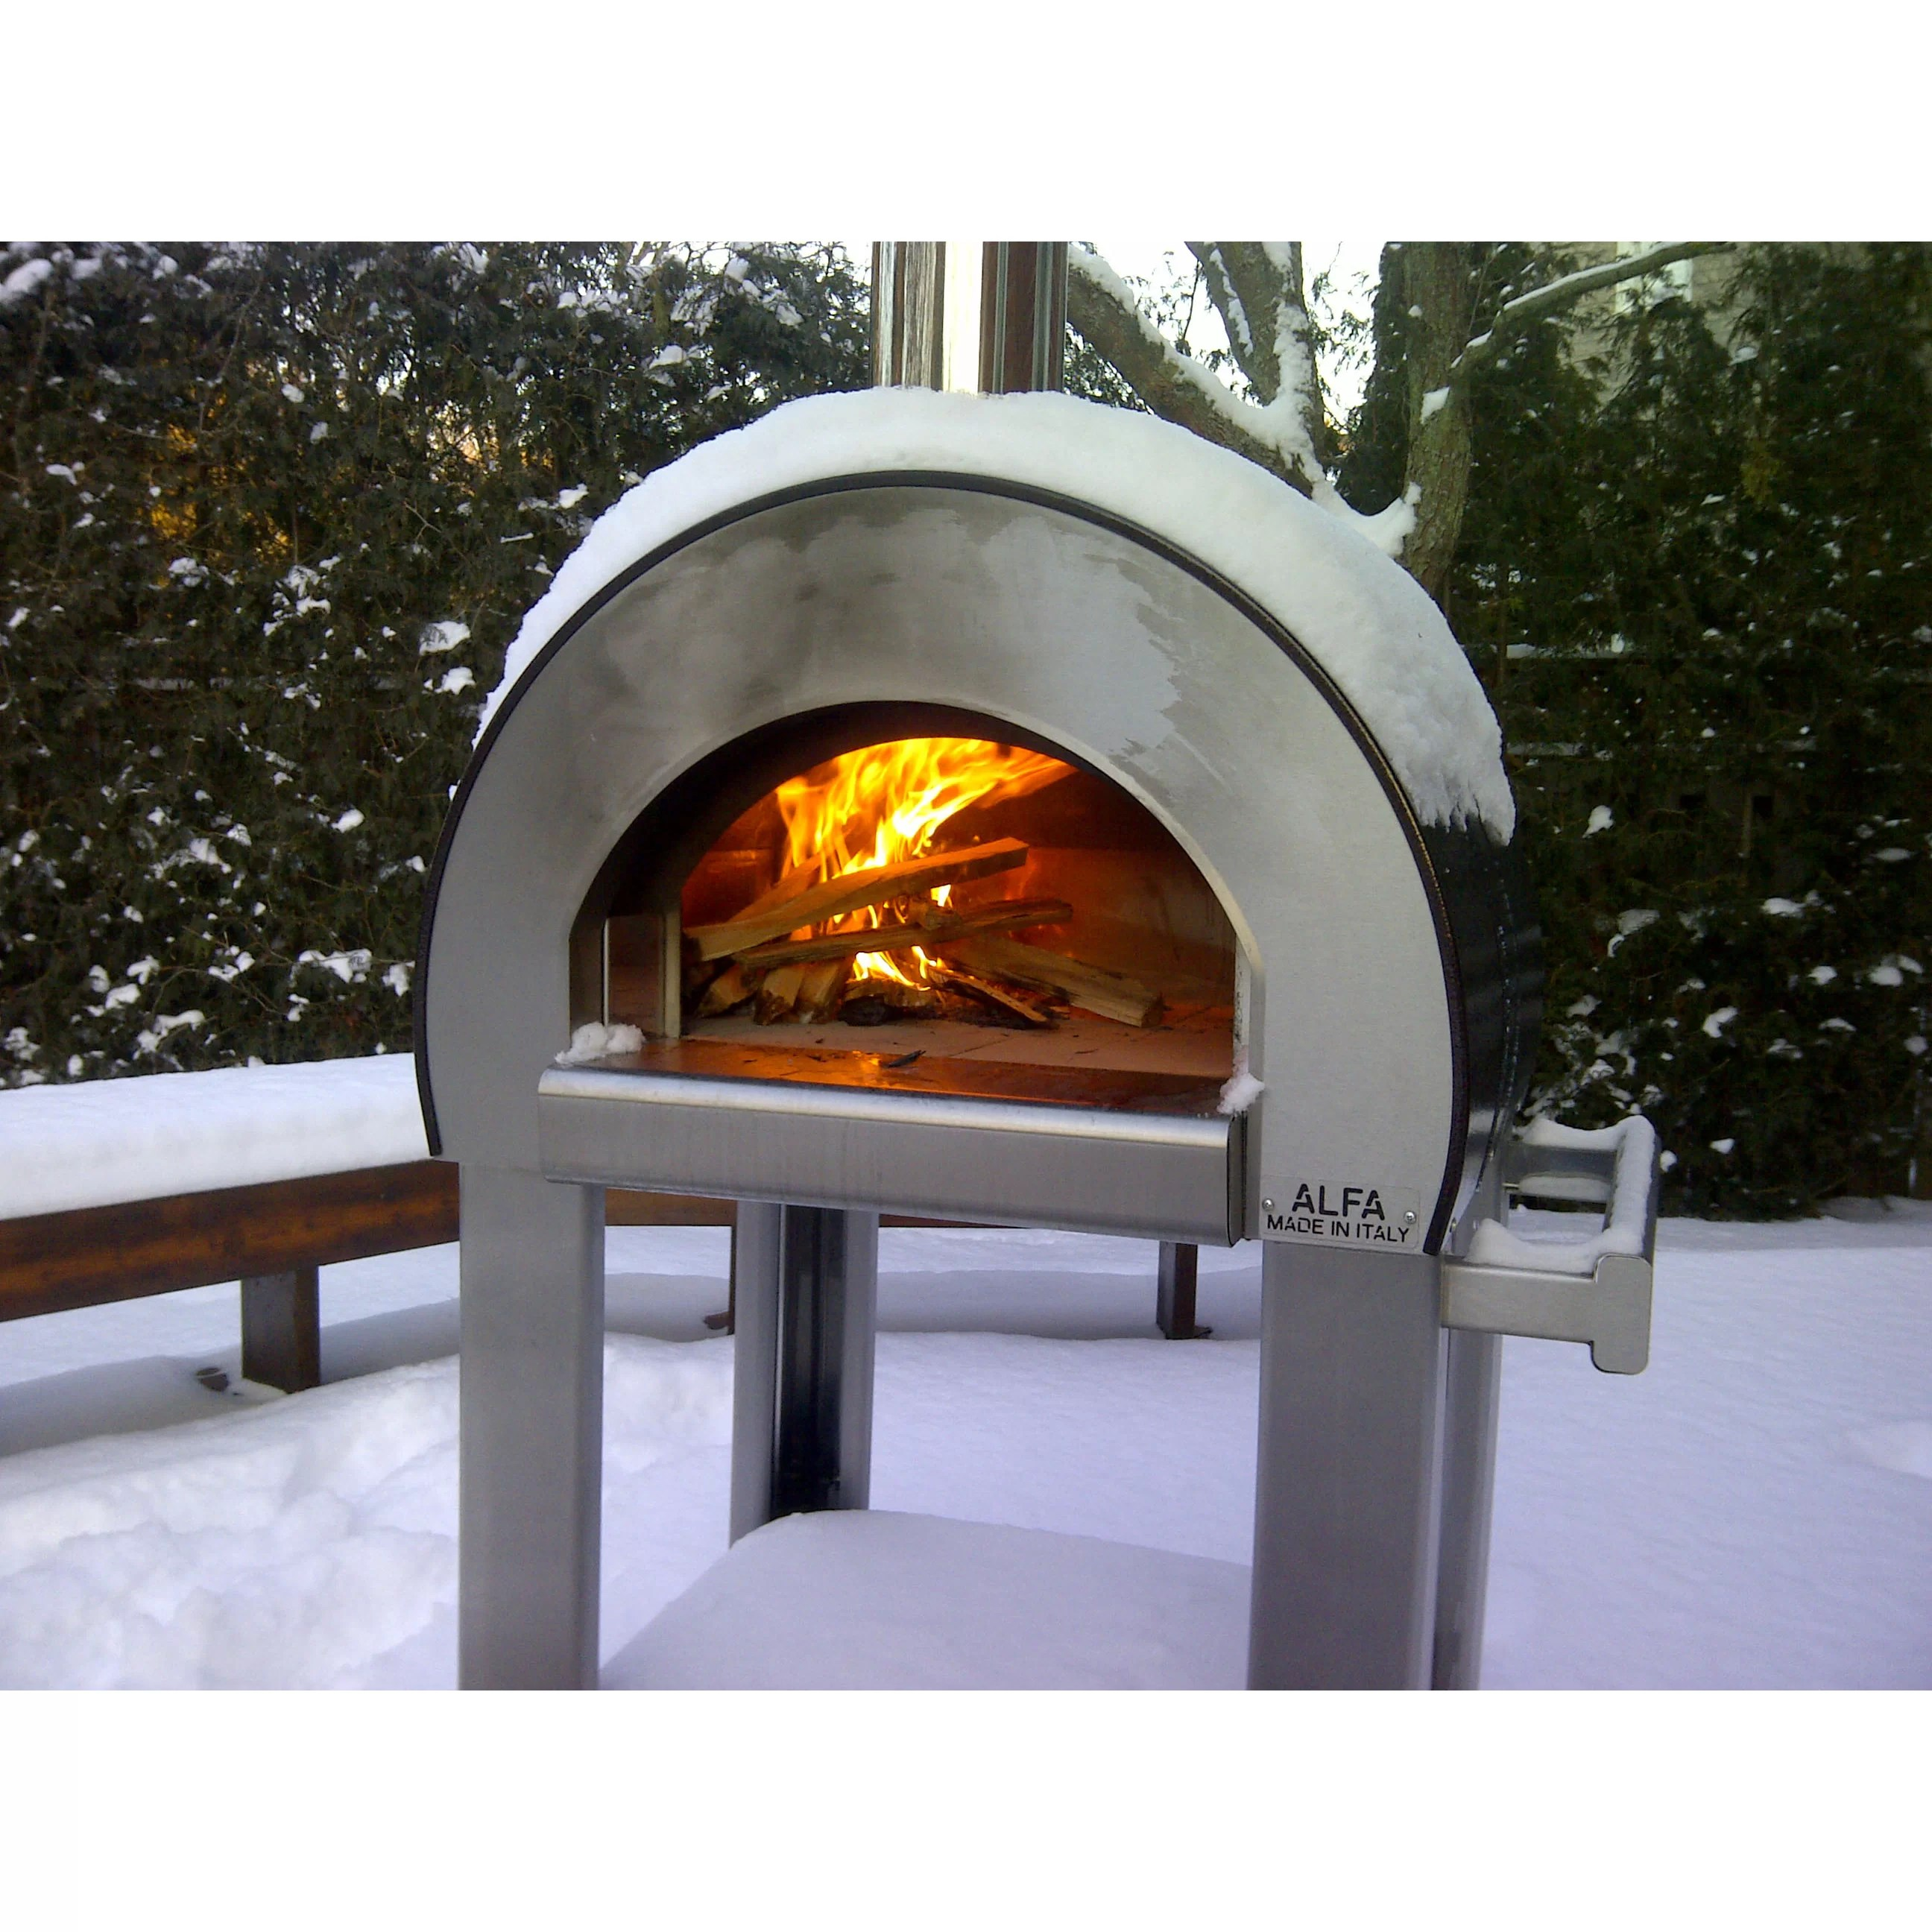 Alfa Pizza Forno 5 Wood Burning Pizza Oven  Reviews  Wayfair